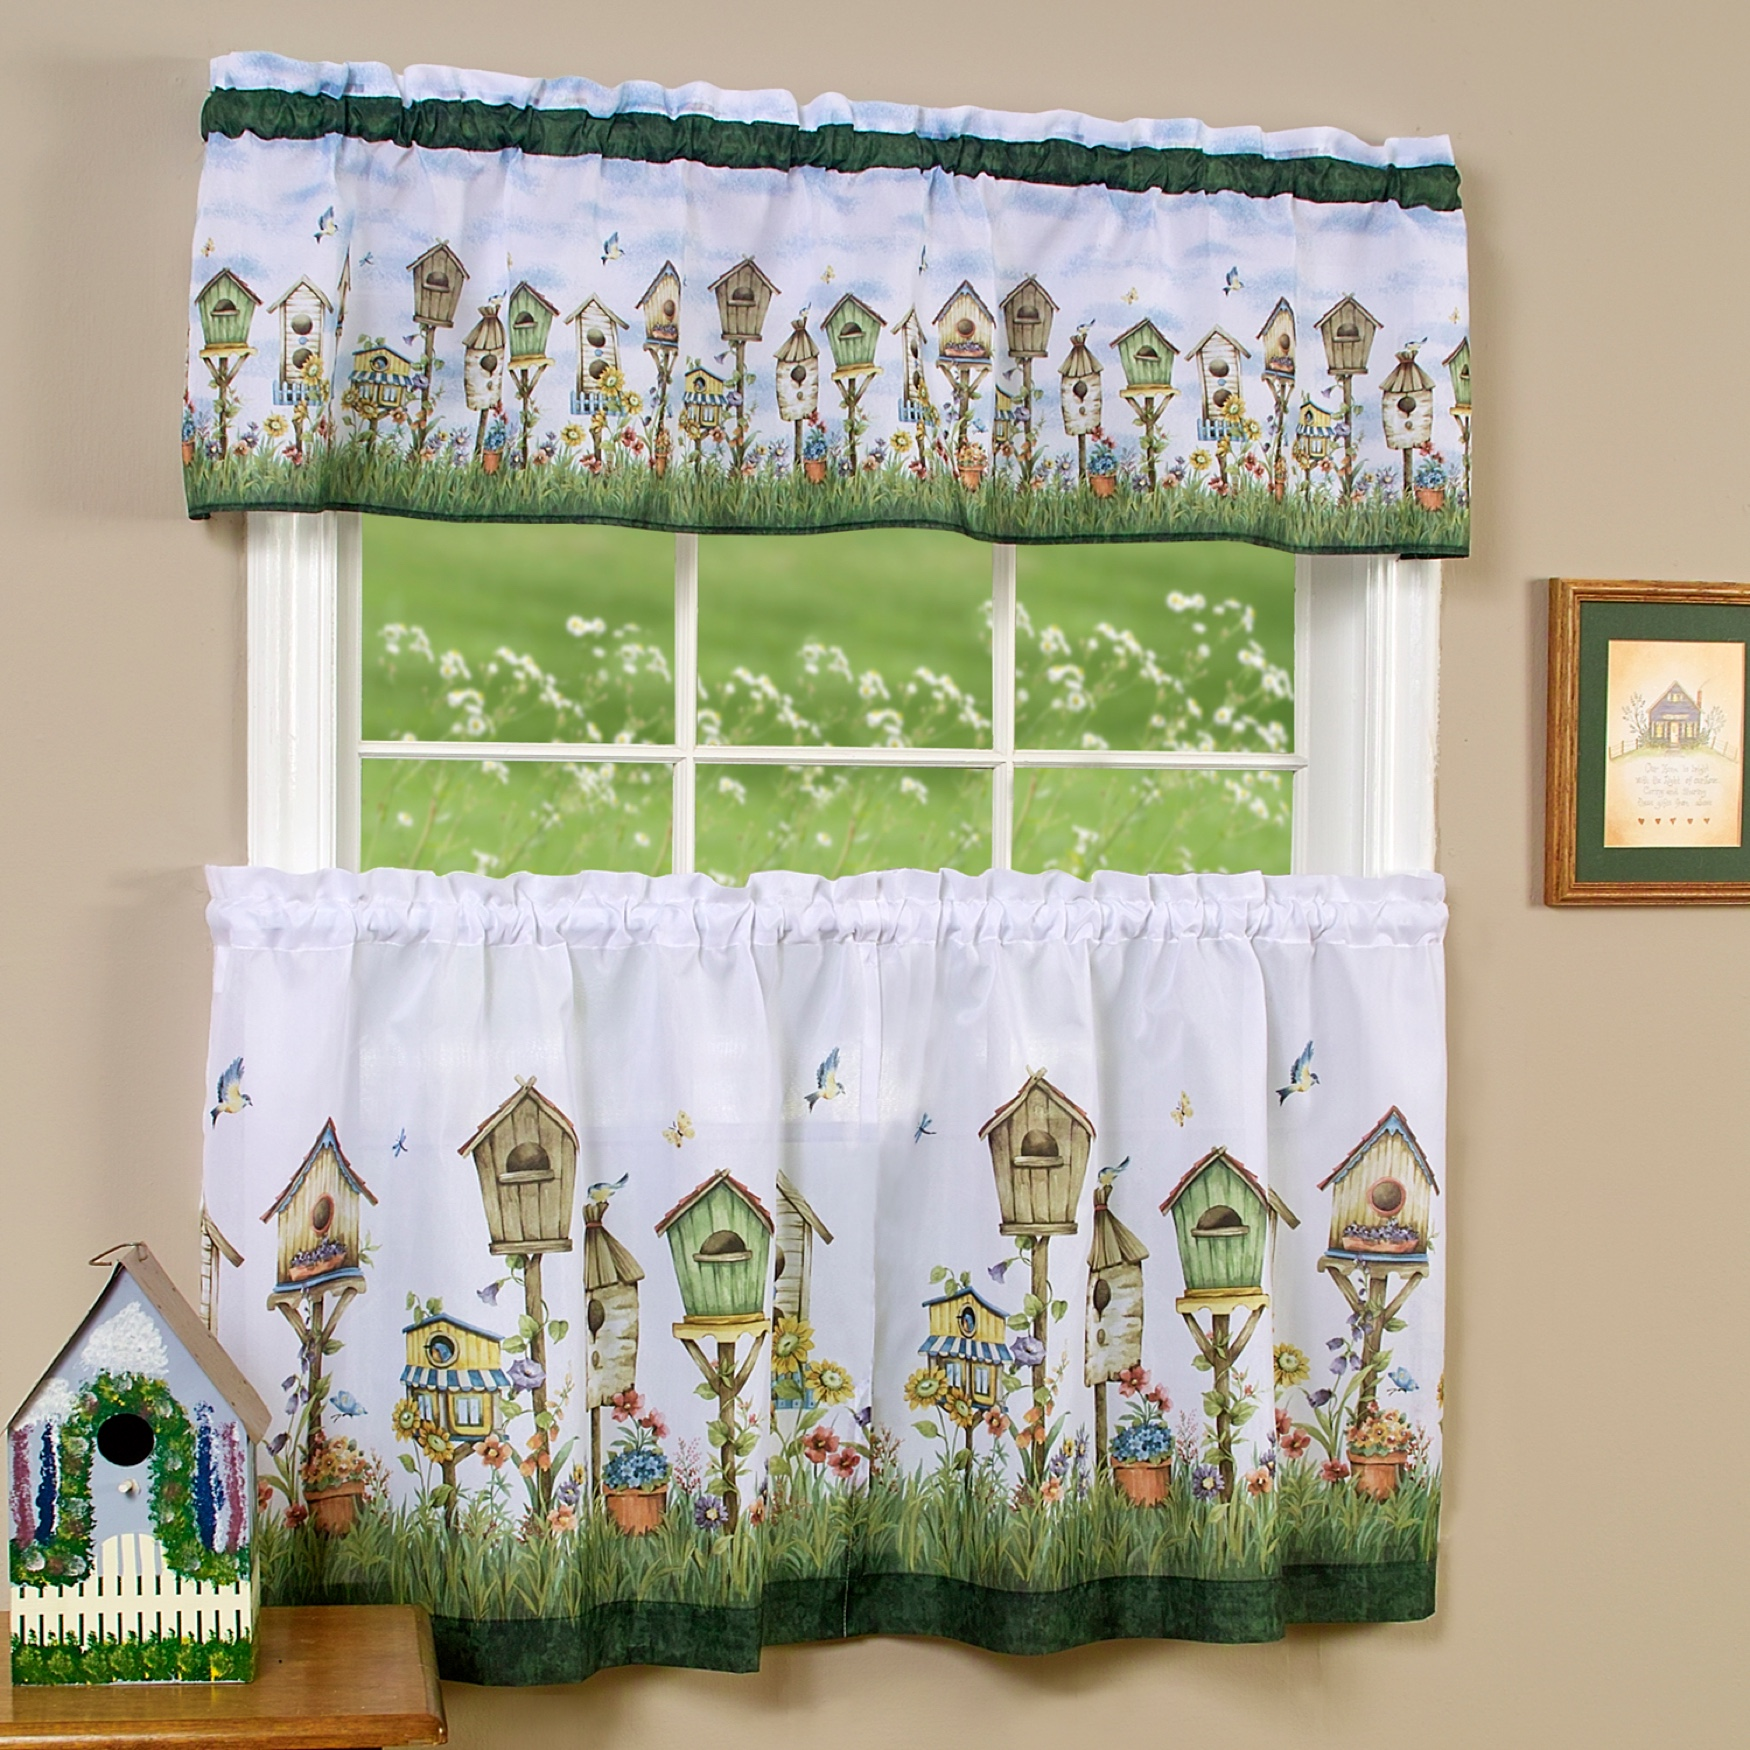 Home Sweet Home Tier and Valance Window Curtain Set,